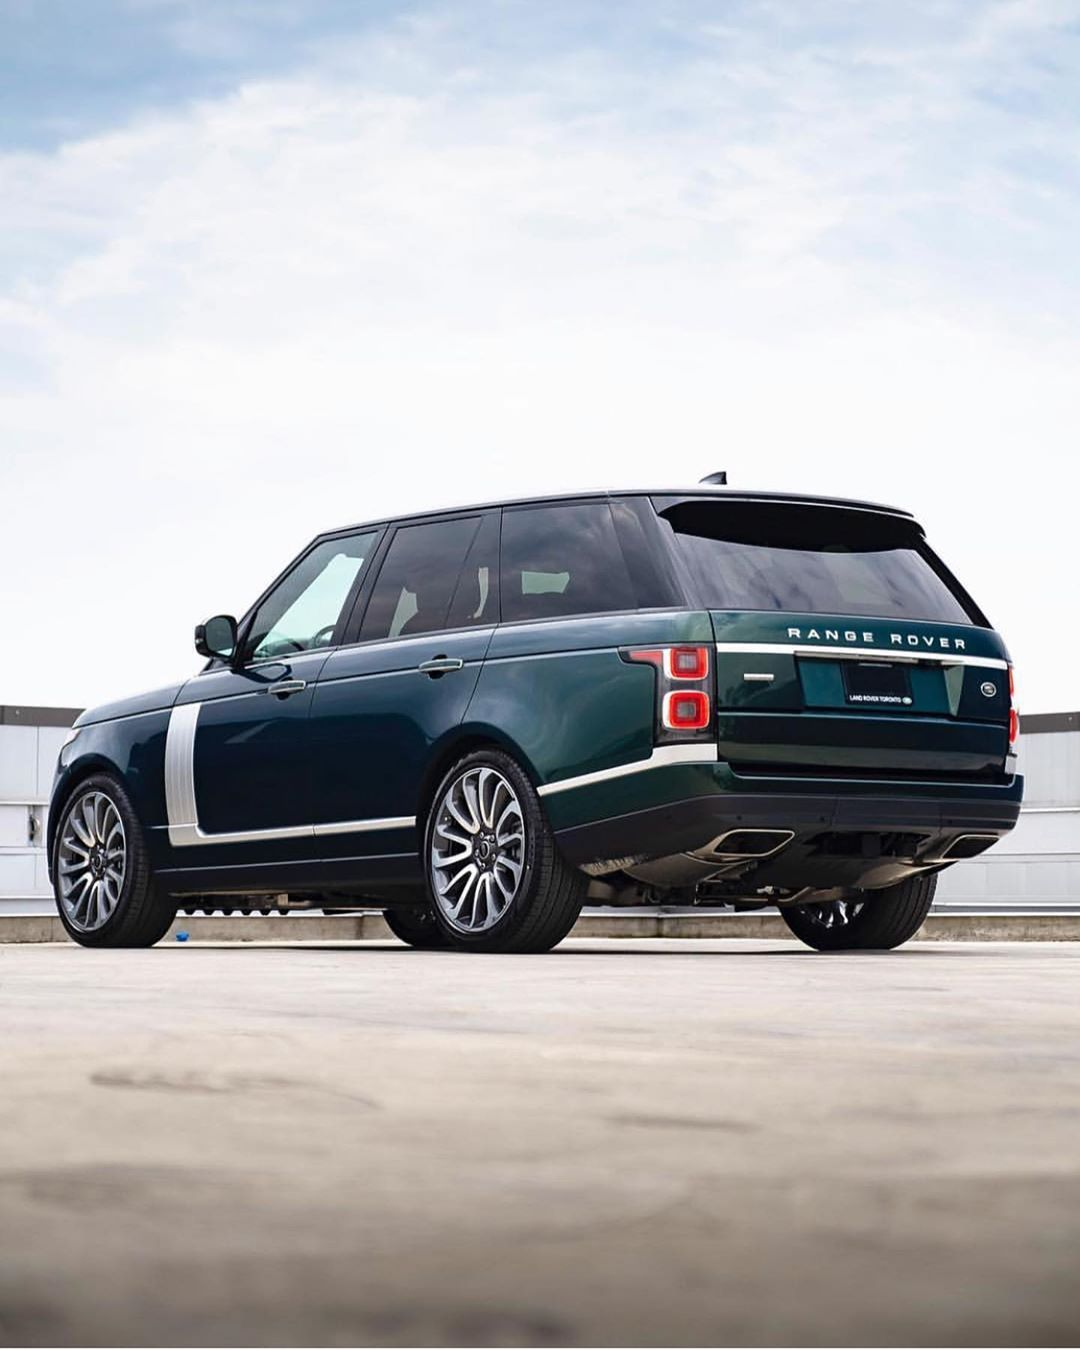 "?? Range Rover UAE ?? on Instagram: ""2019 Range Rover Autobiography is finished in Spectral British Racing Green with Vintage Tan Leather ? . . . . .  Repost from…"""